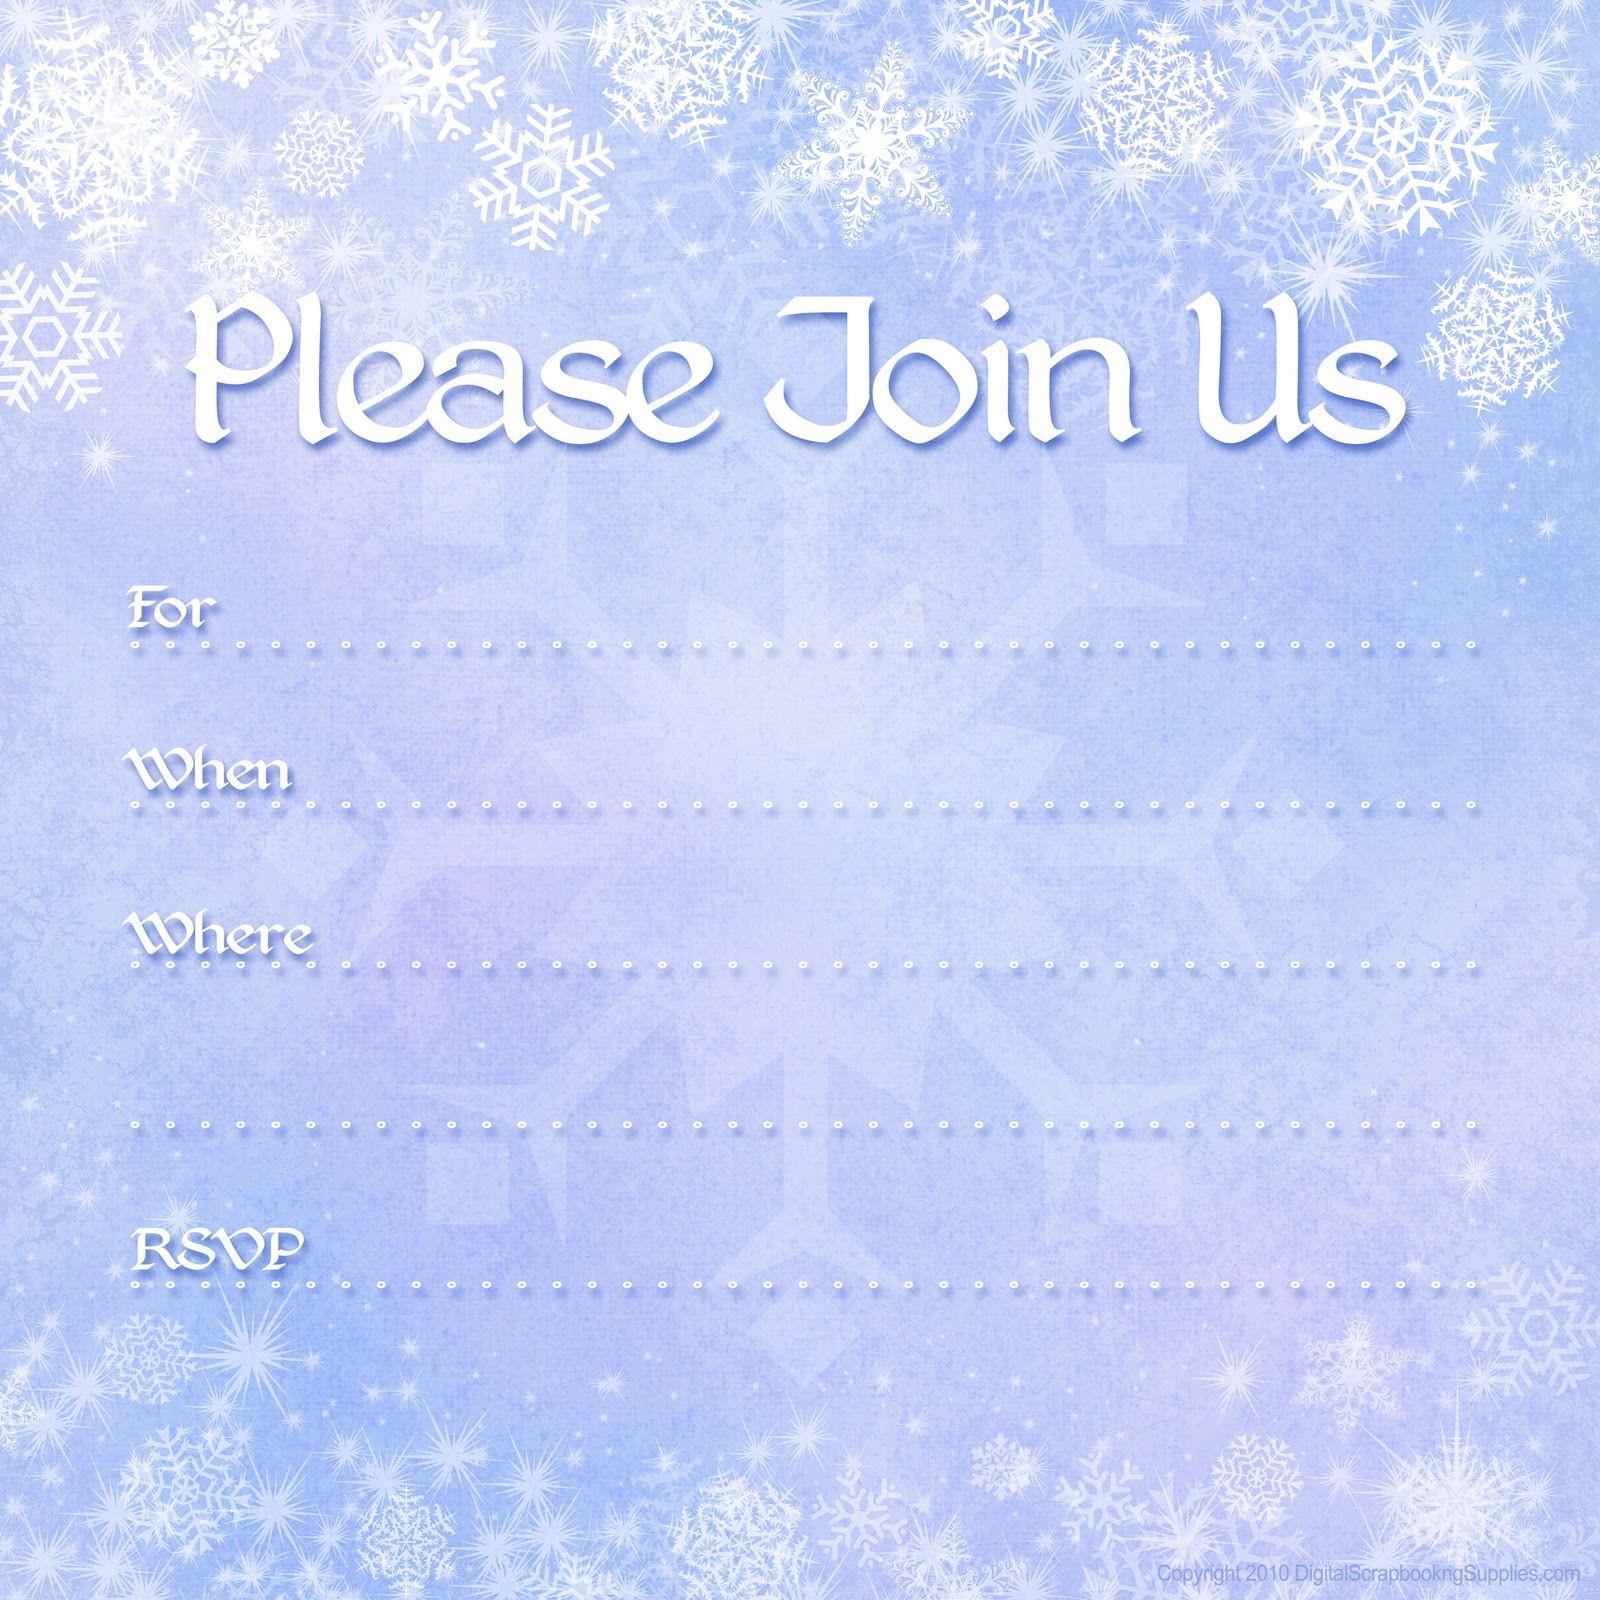 printable invites printable party invitations printable invites printable party invitations winter holiday invitations